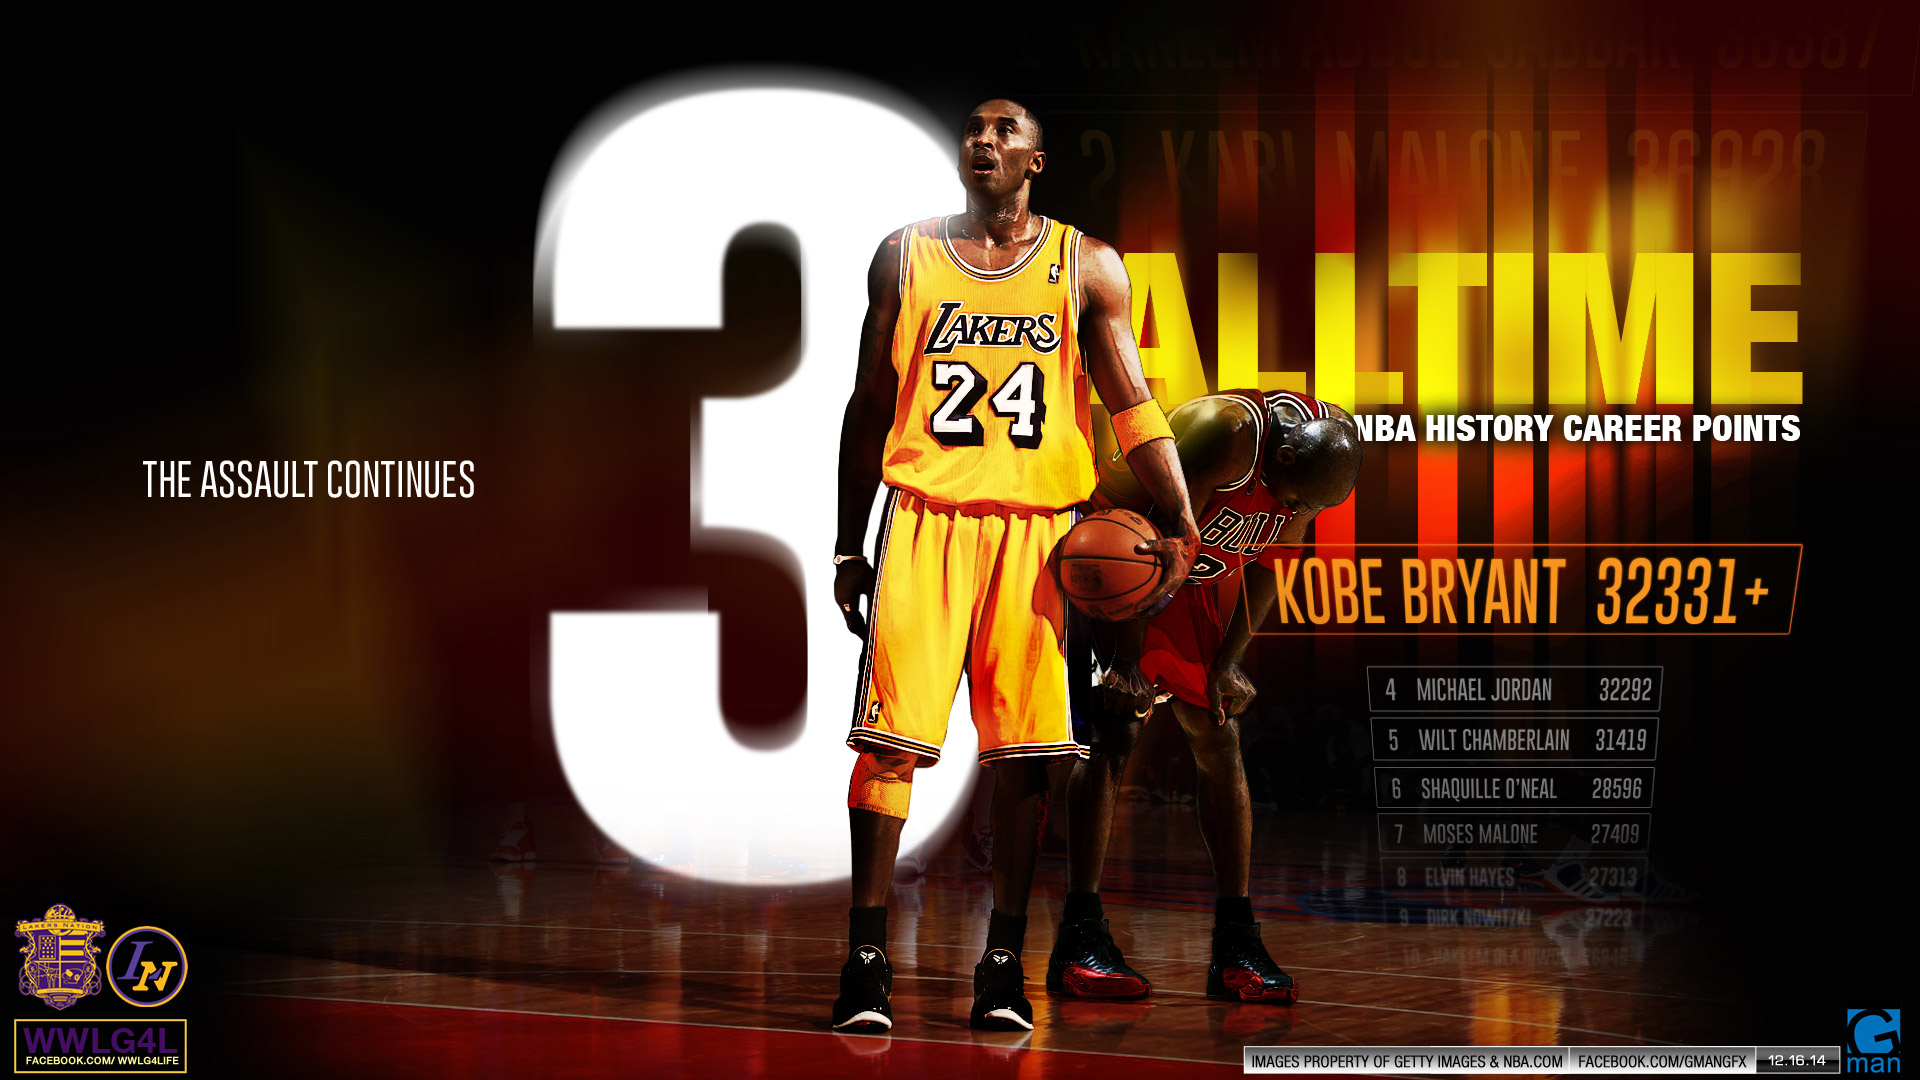 Kobe Bryant 3rd All-Time Wallpaper | Basketball Wallpapers at BasketWallpapers.com